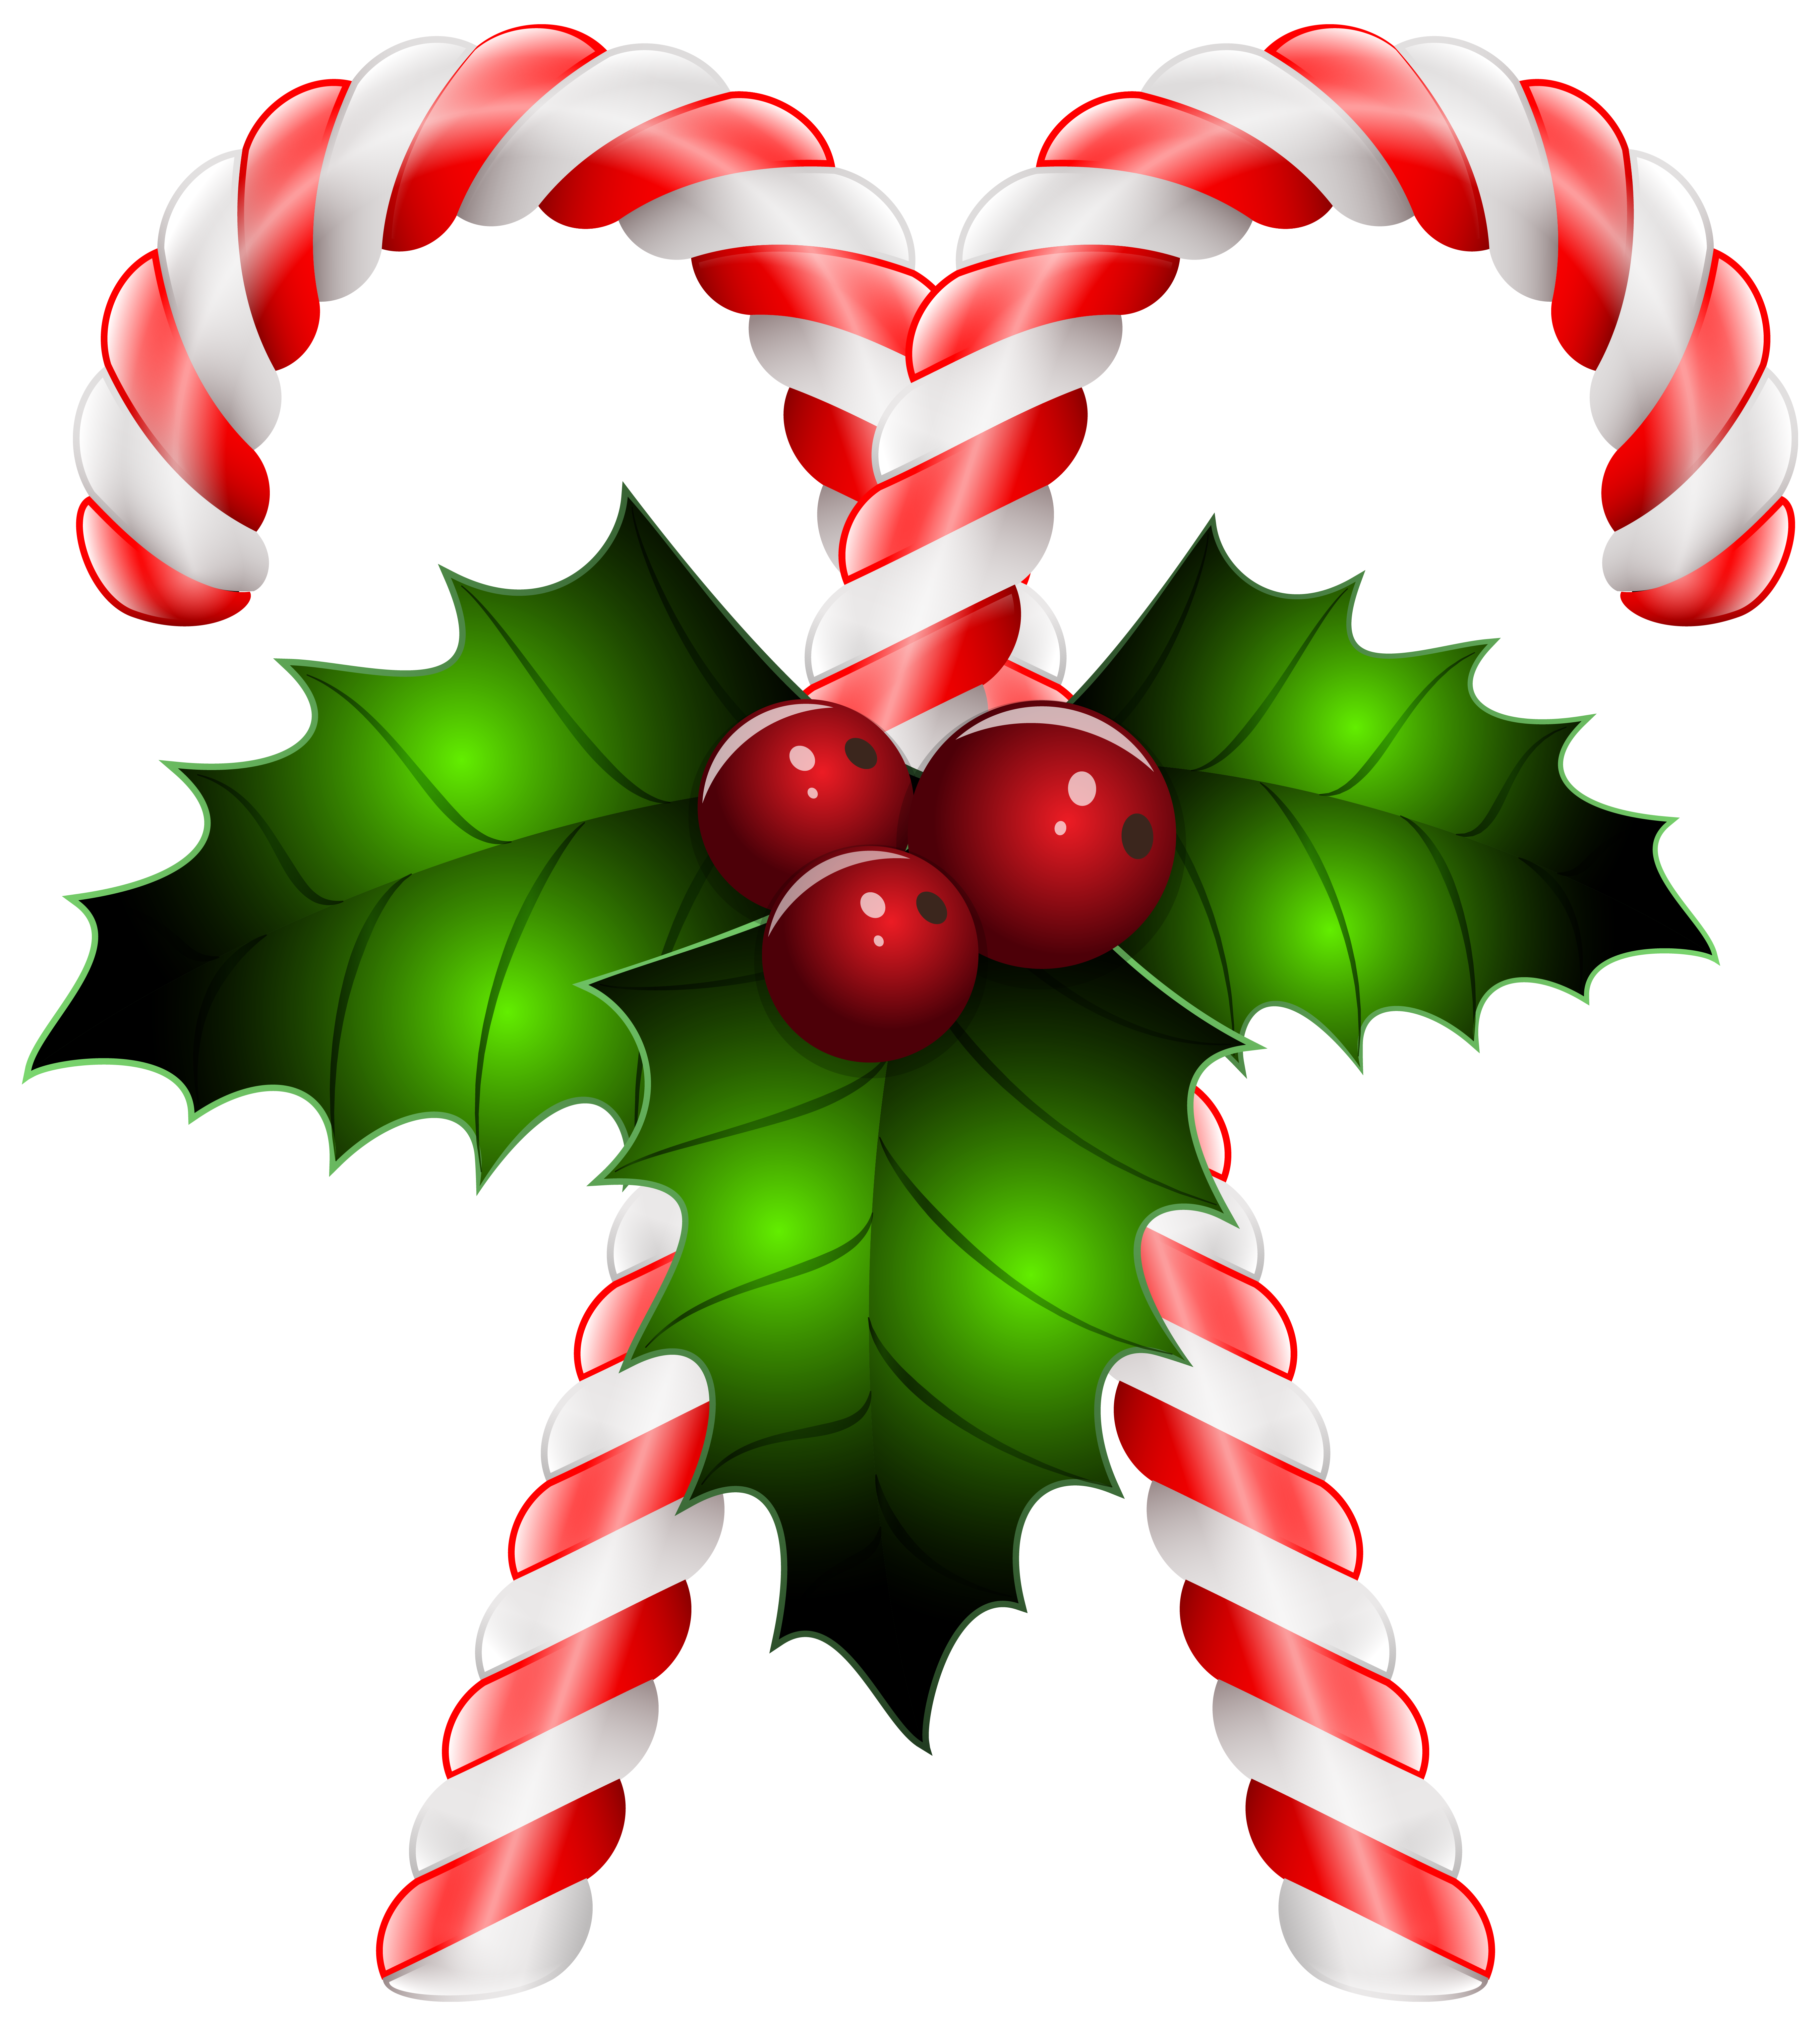 Candy crush clipart cane picture black and white stock Candy cane Candy Crush Soda Saga Clip art - Candy Canes with Holly ... picture black and white stock